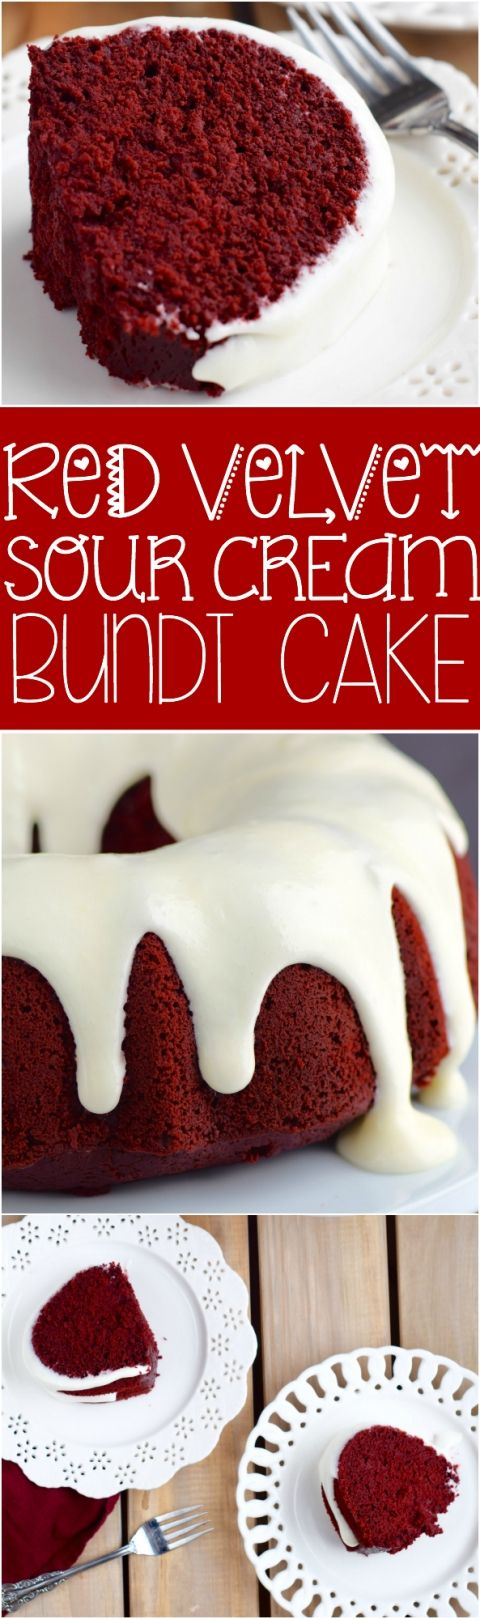 This Red Velvet Sour Cream Bundt Cake With Cream Cheese Buttermilk Frosting Is Moist Rich And Packed With Them Most Amazing Flav Desserts Cake Recipes Baking